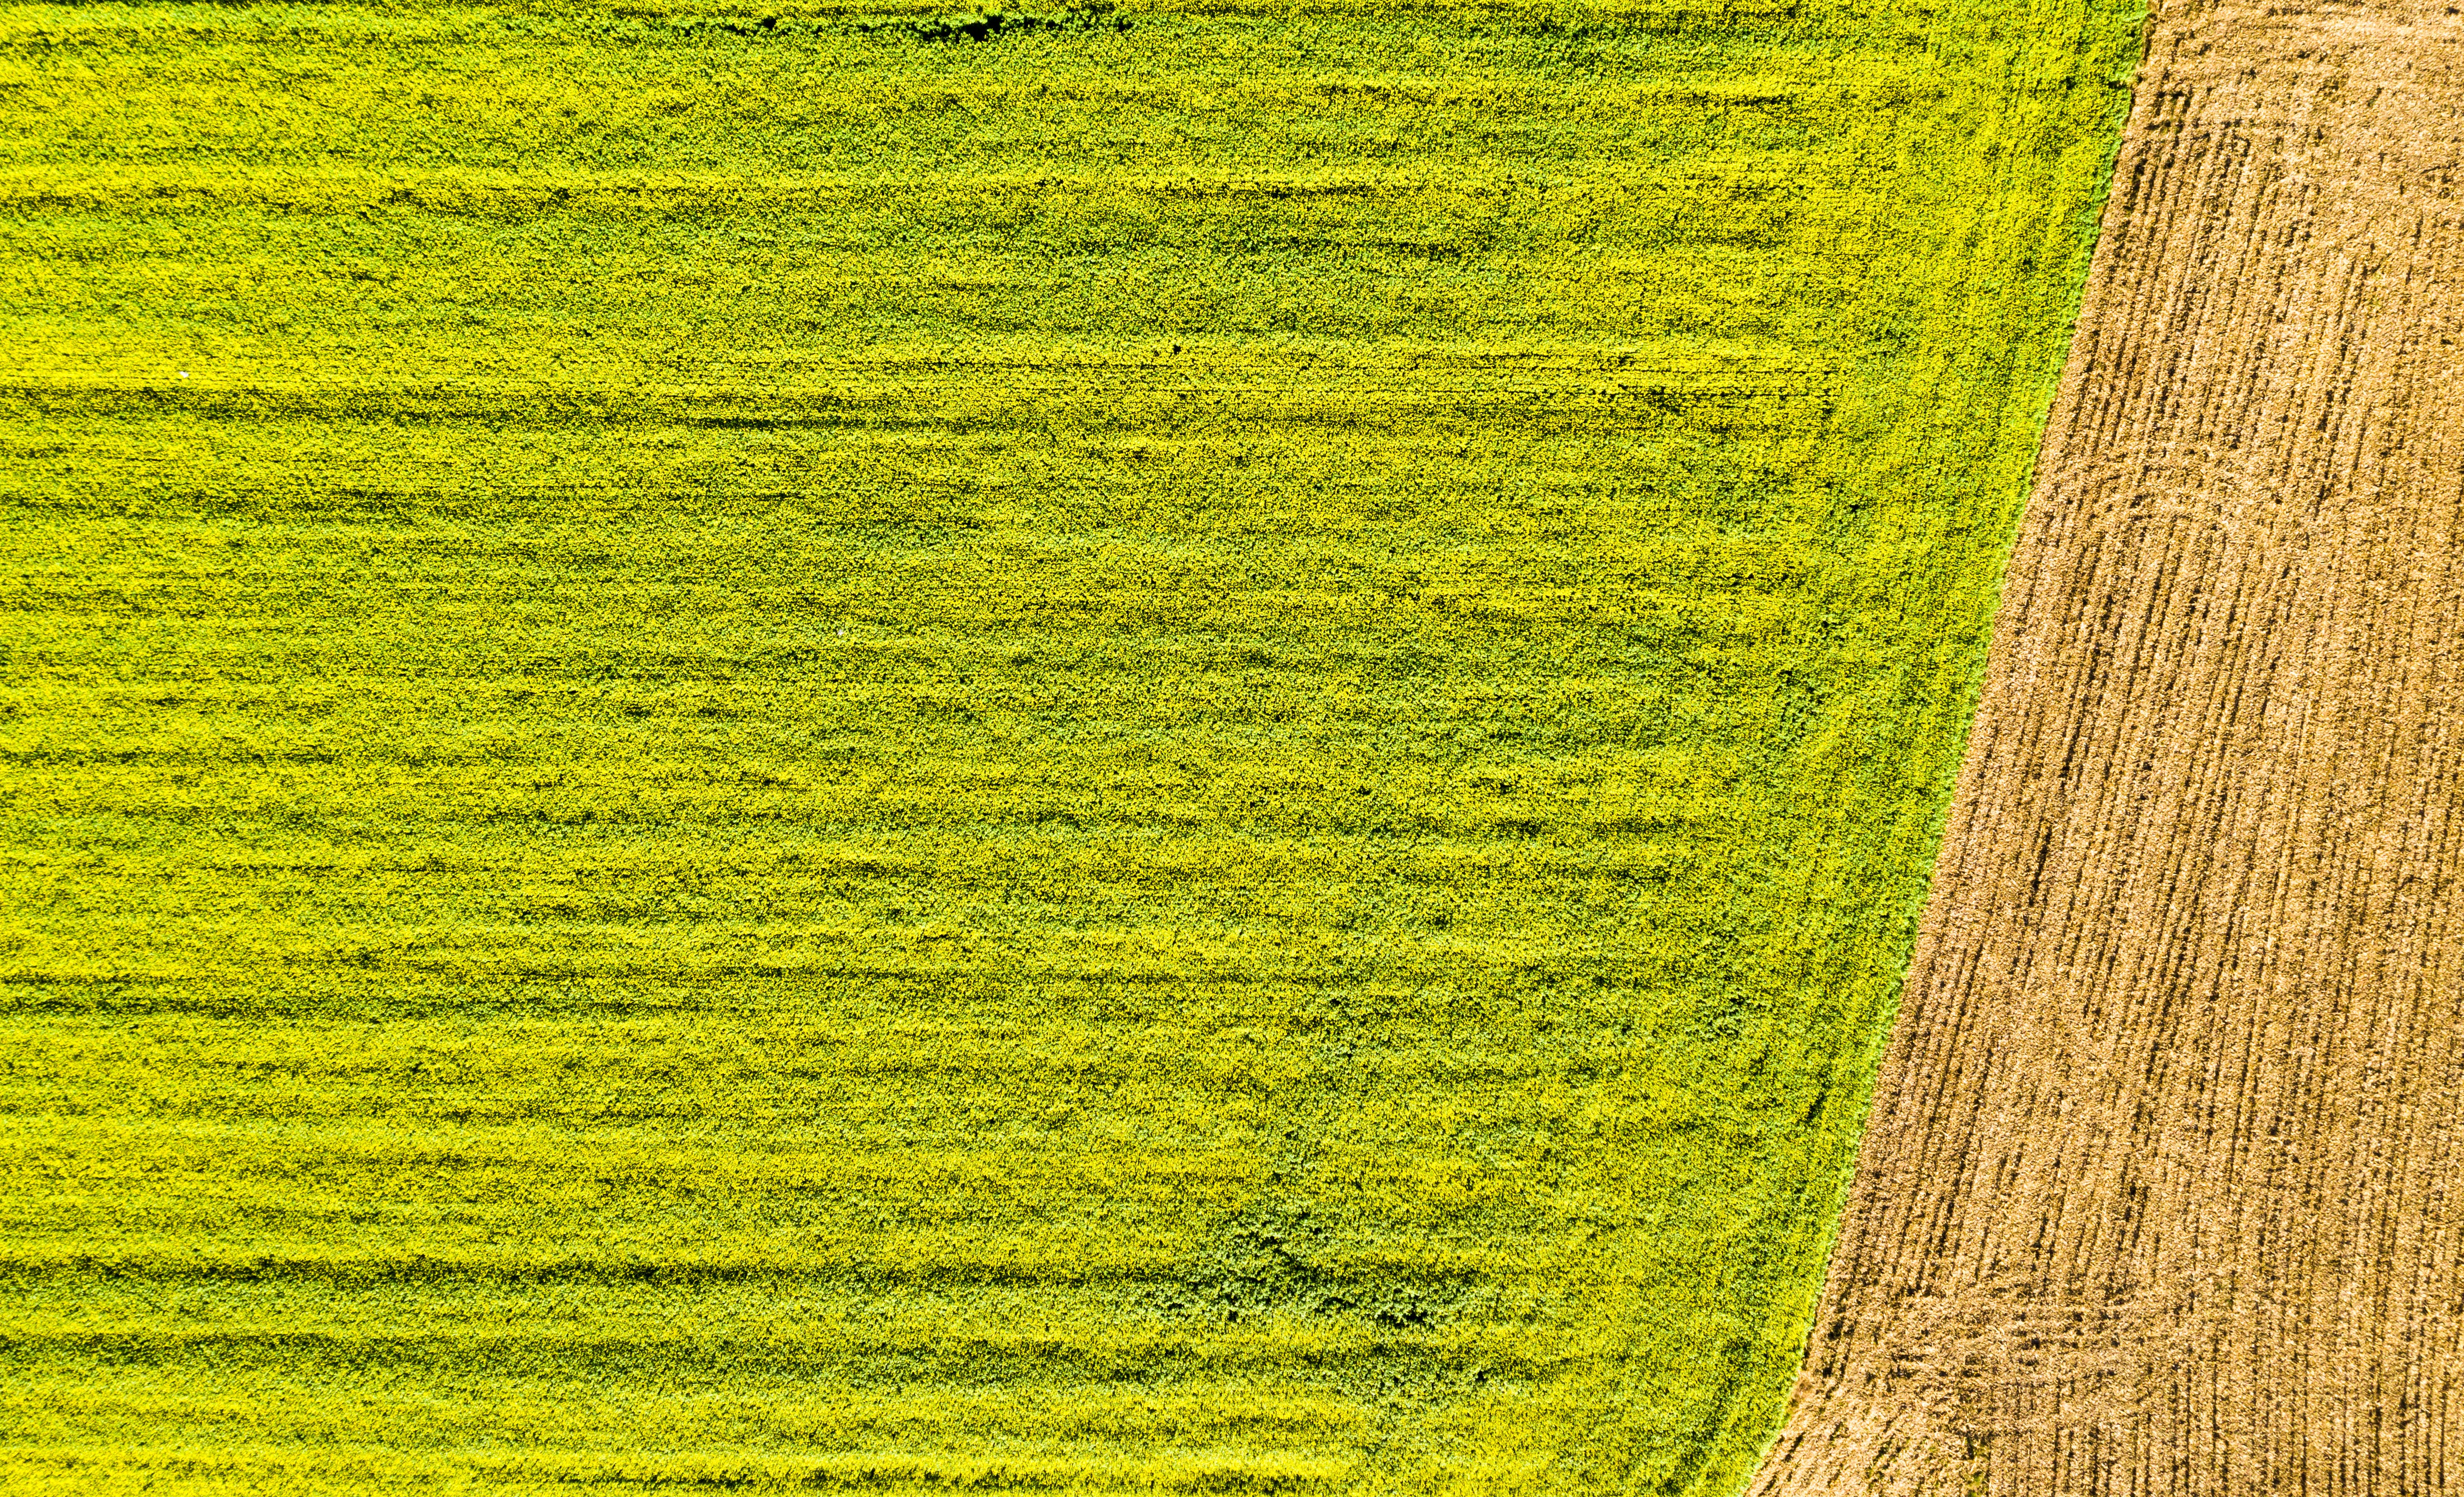 Free stock photo of aerial photography, color, drone photography, farmer